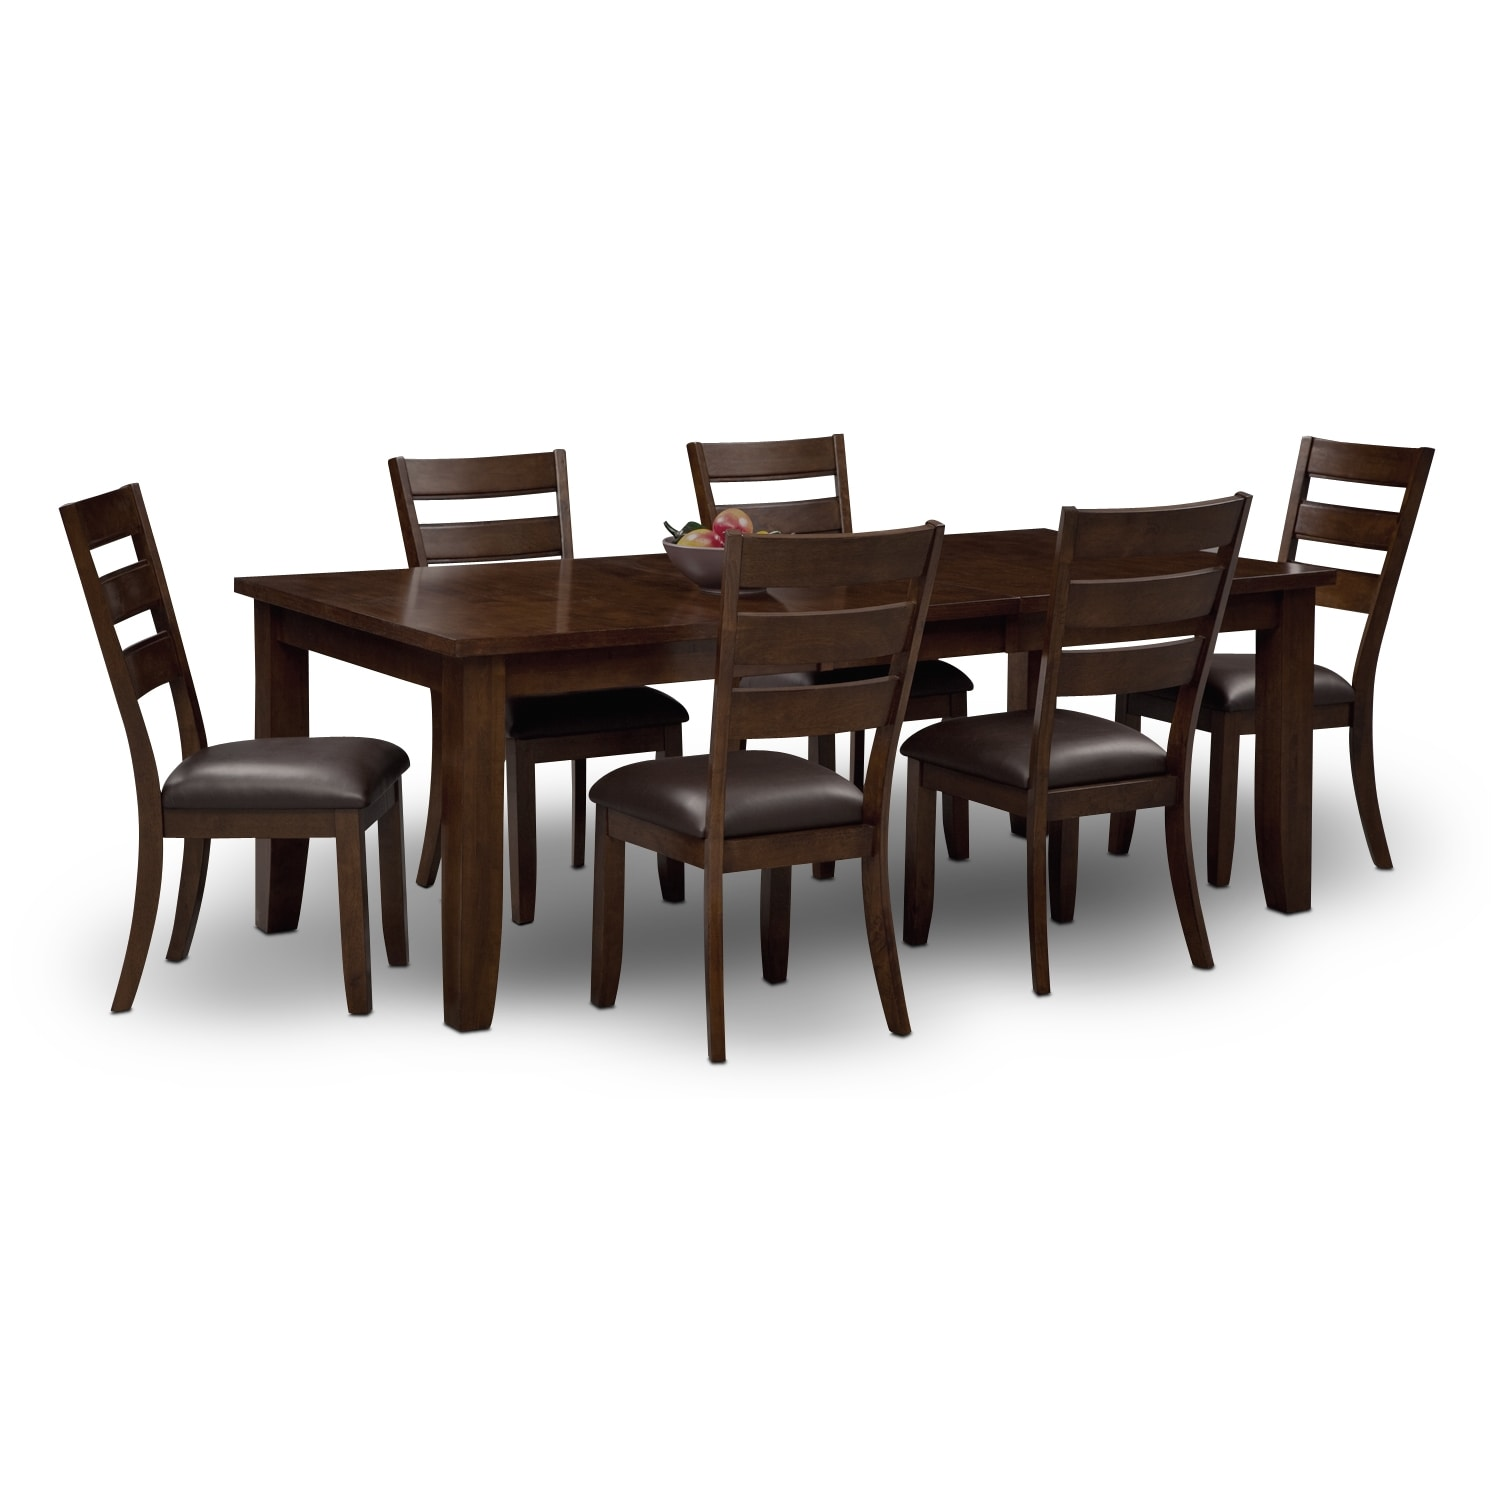 Dining Room Furniture - Abaco Table and 6 Chairs - Brown